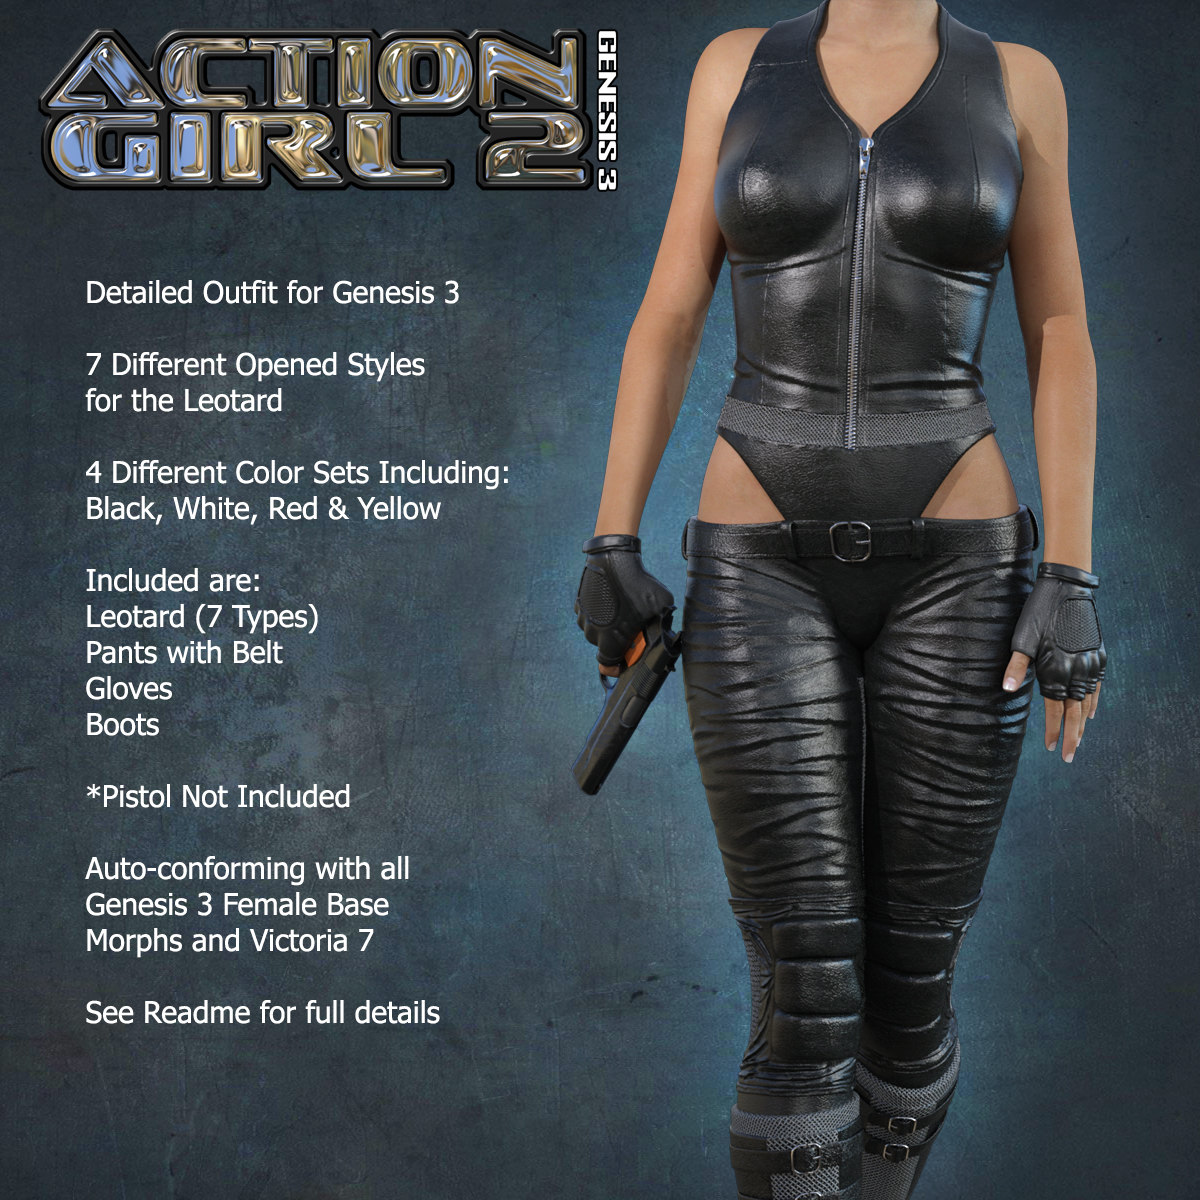 Exnem Action Girl 2 for G3